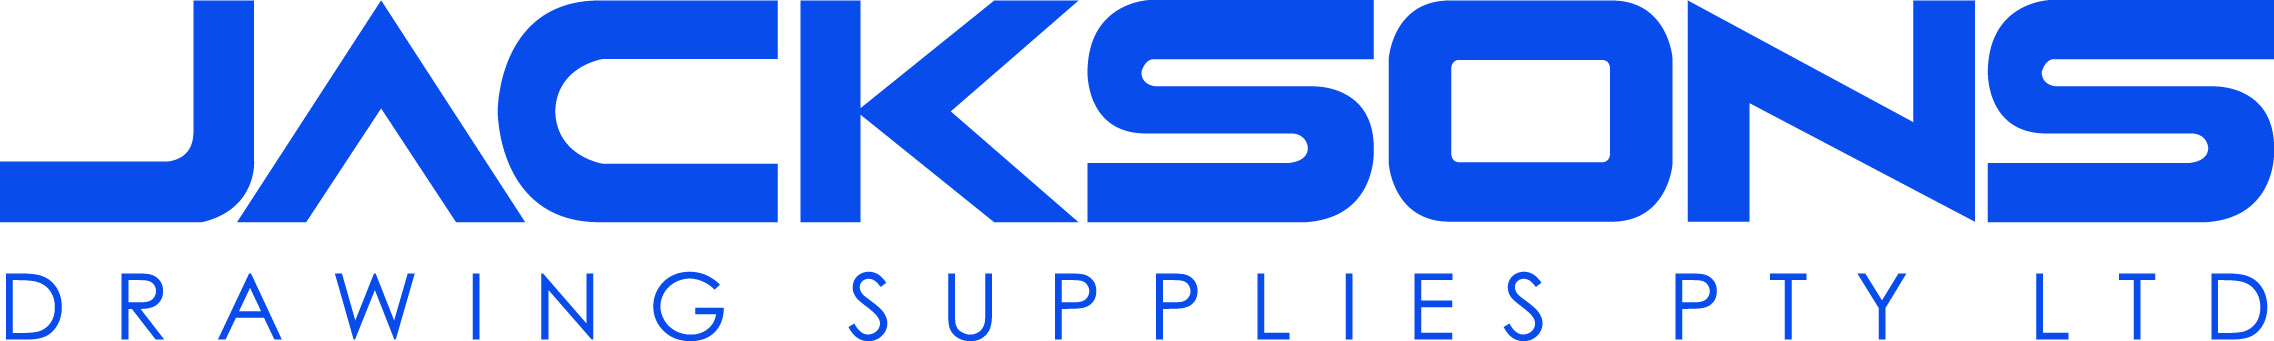 jacksons drawing supplies logo blue.jpg